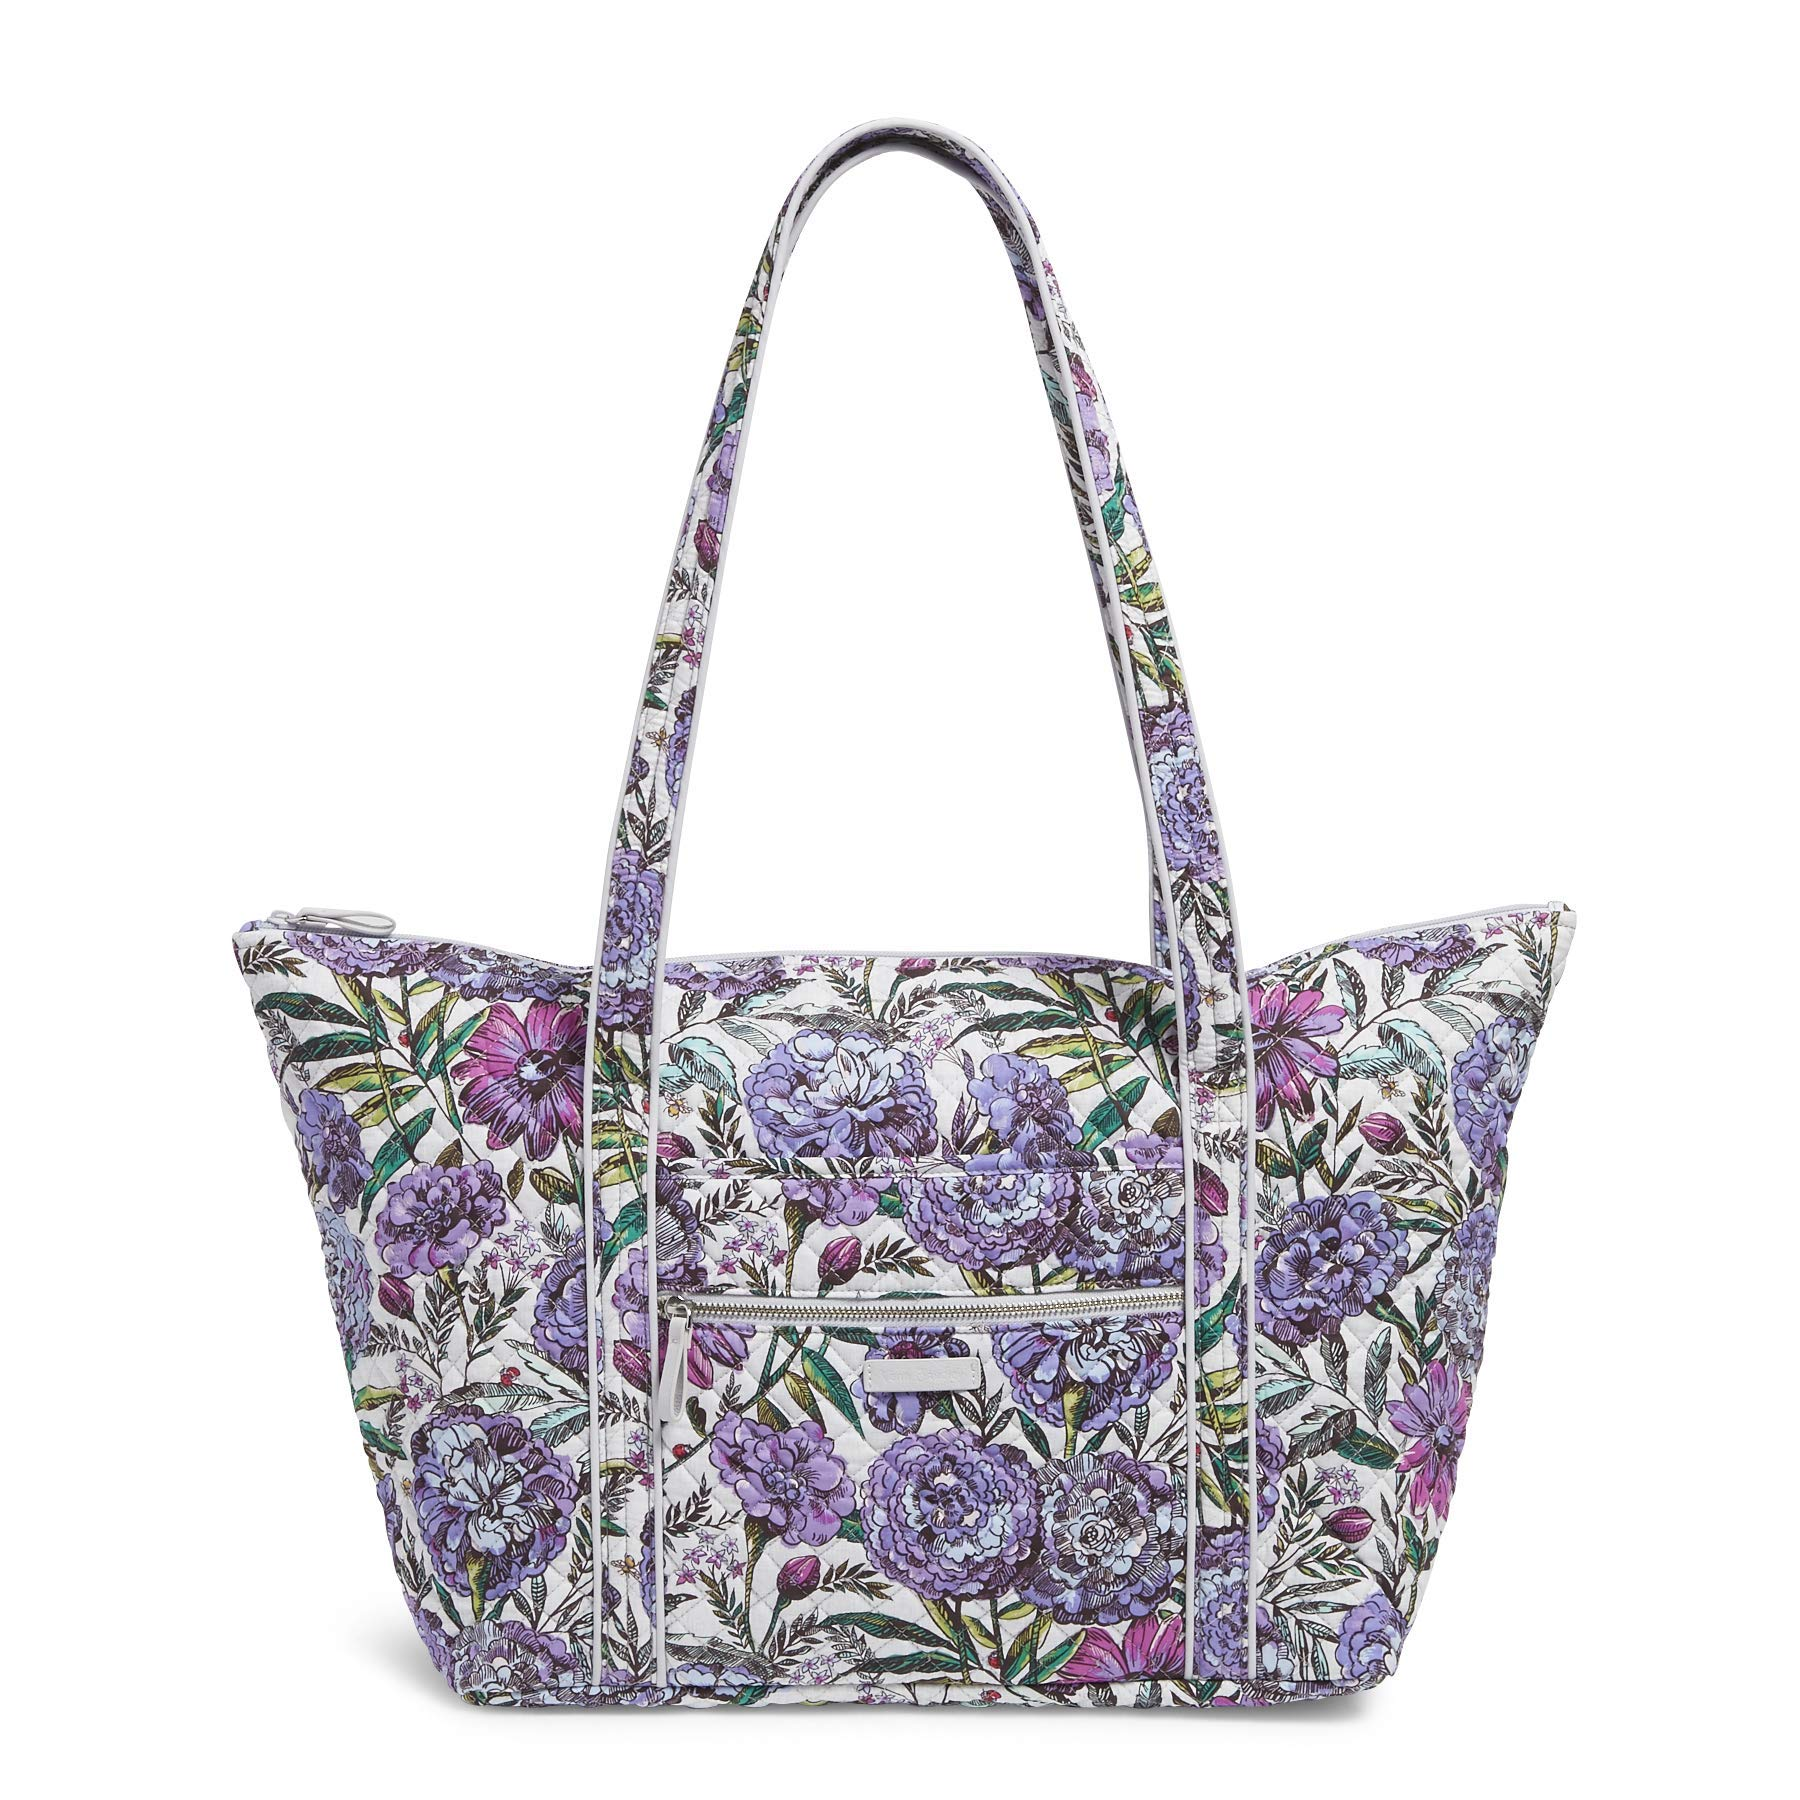 Vera Bradley Iconic Miller Travel Bag, Signature Cotton, Lavender Meadow